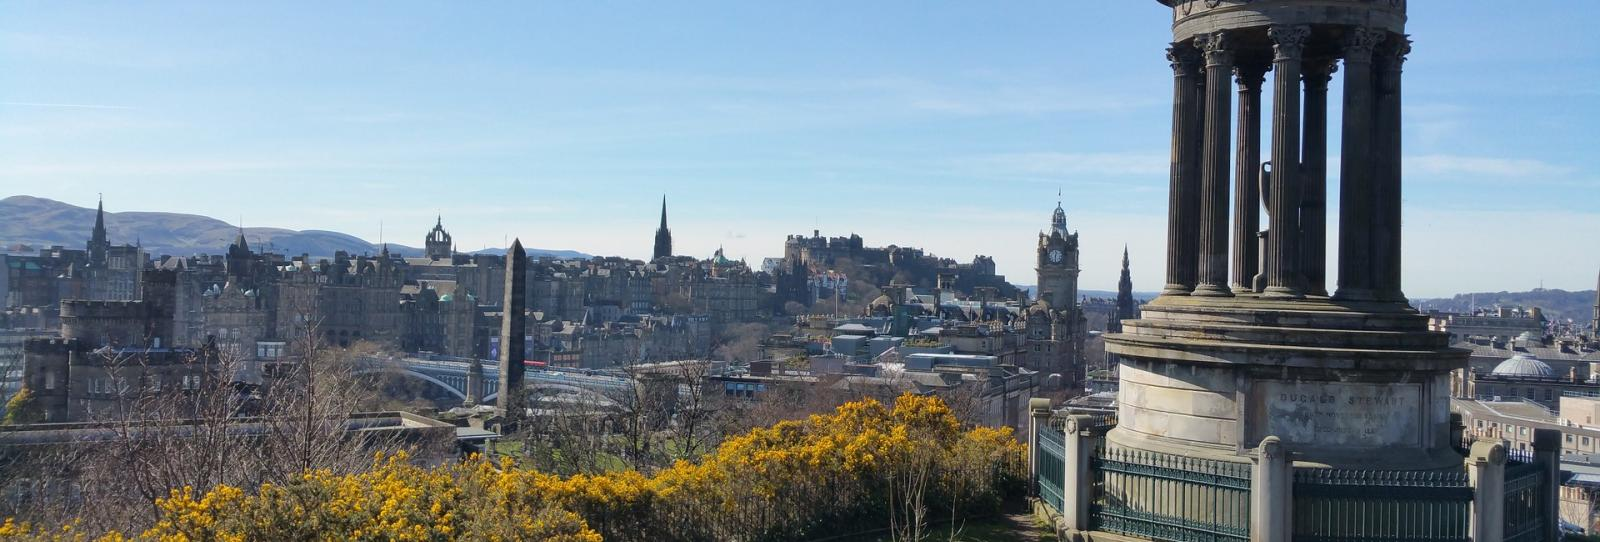 Amazing view from Carlton Hill over Edinburgh